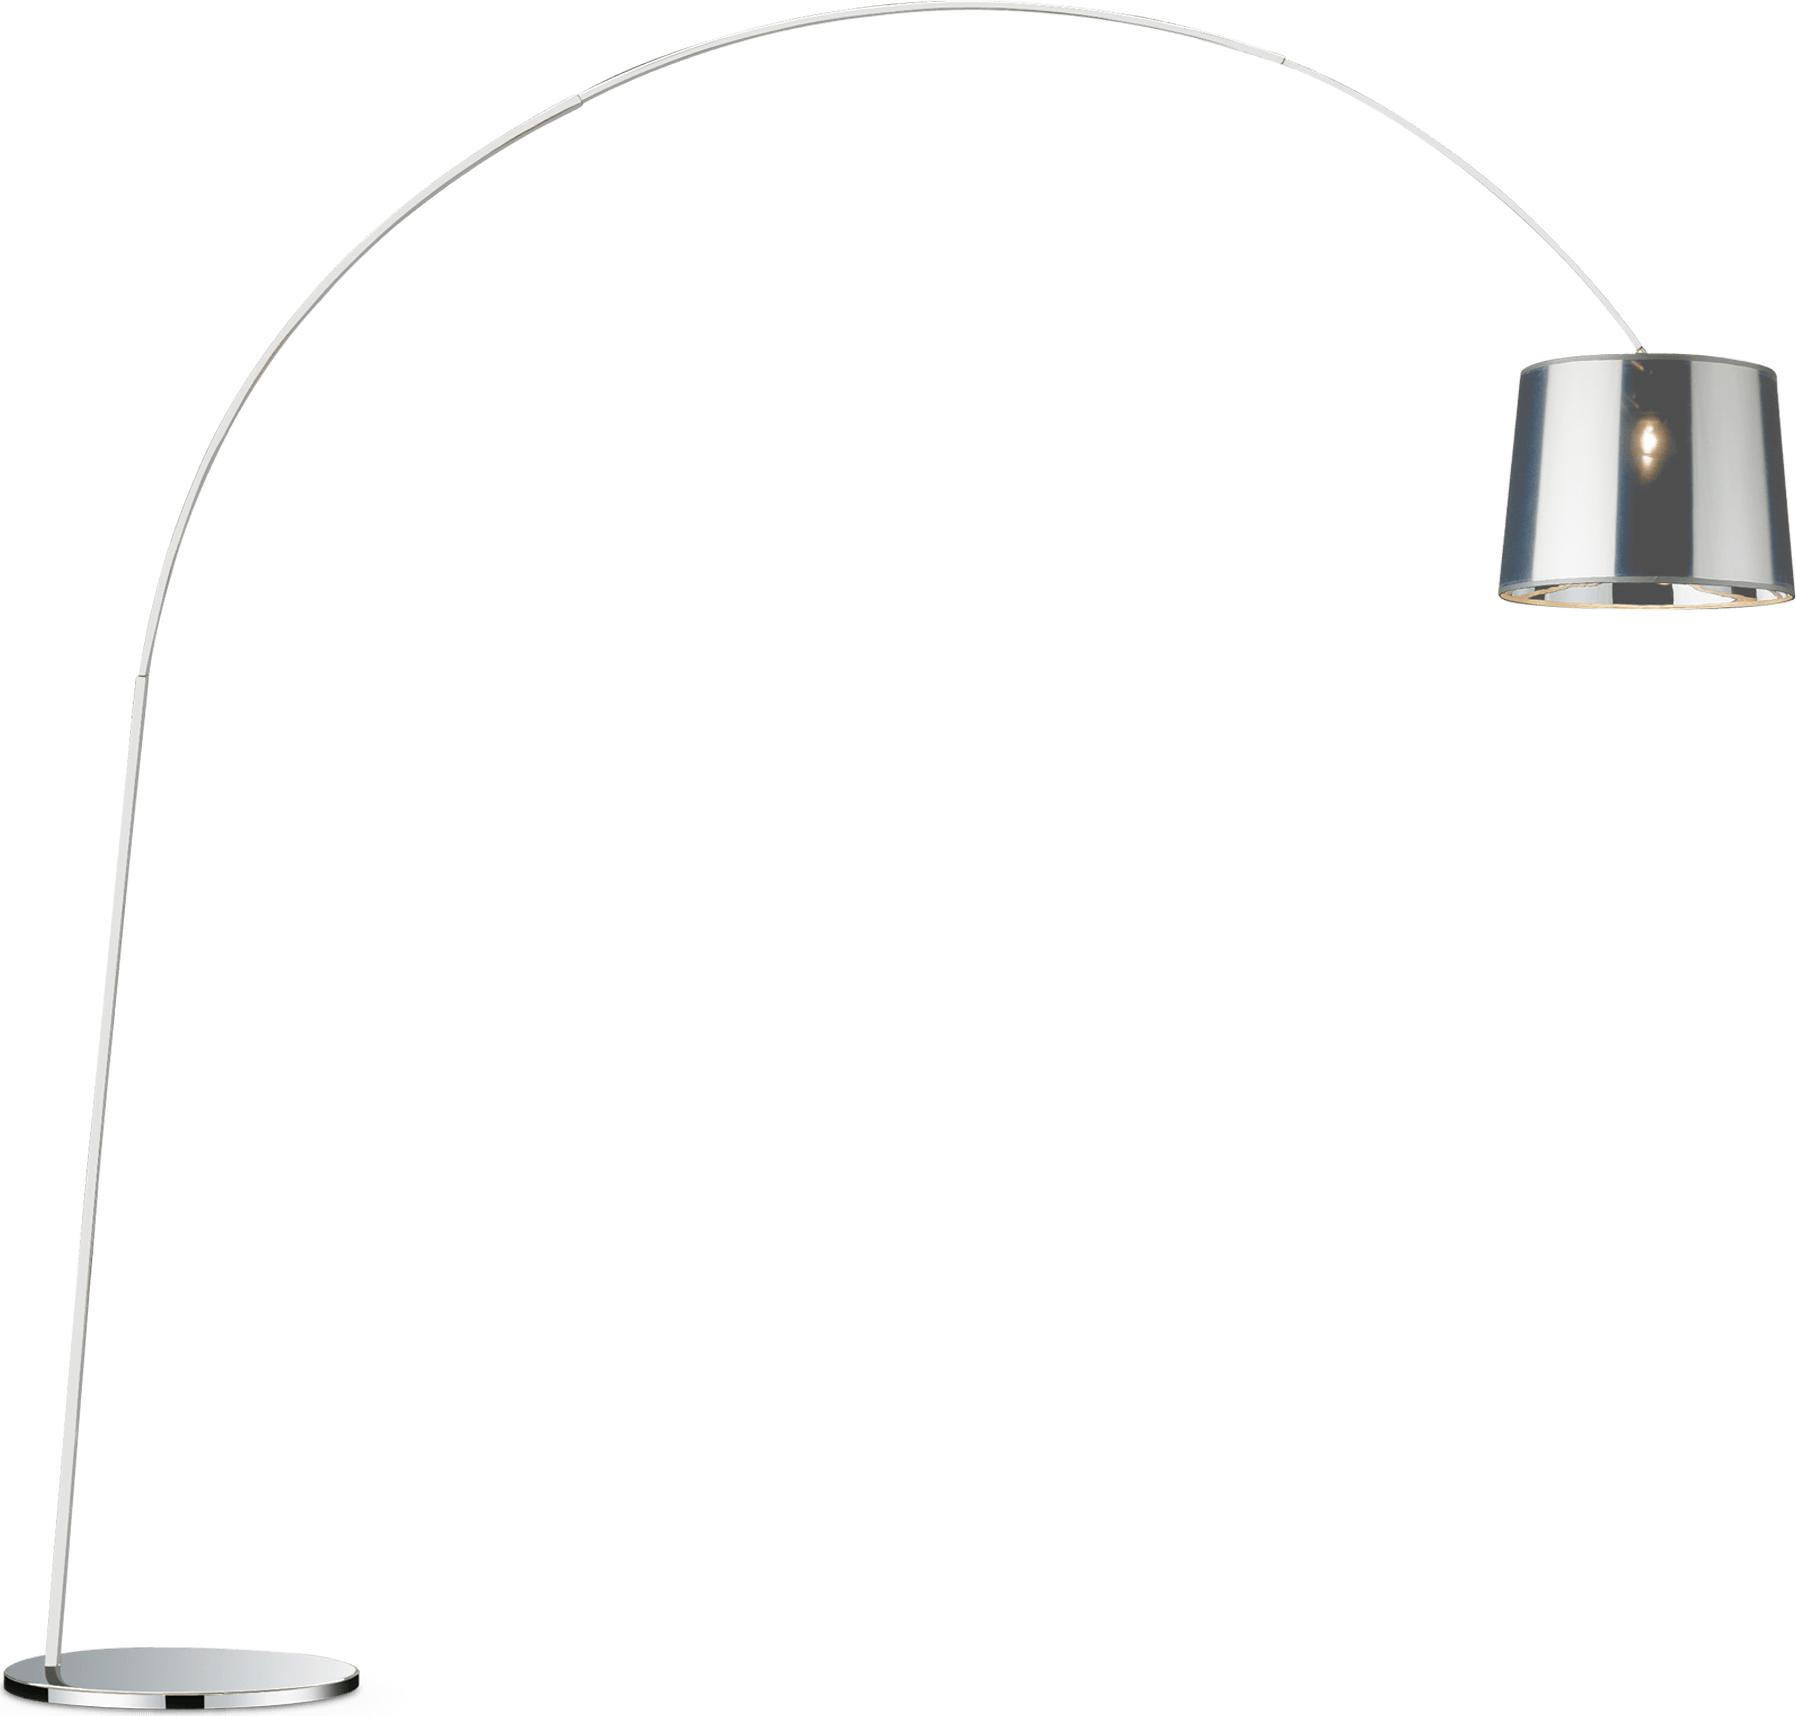 Ideal lux LED Dorsale Cromo lampa stolná 5W 5126